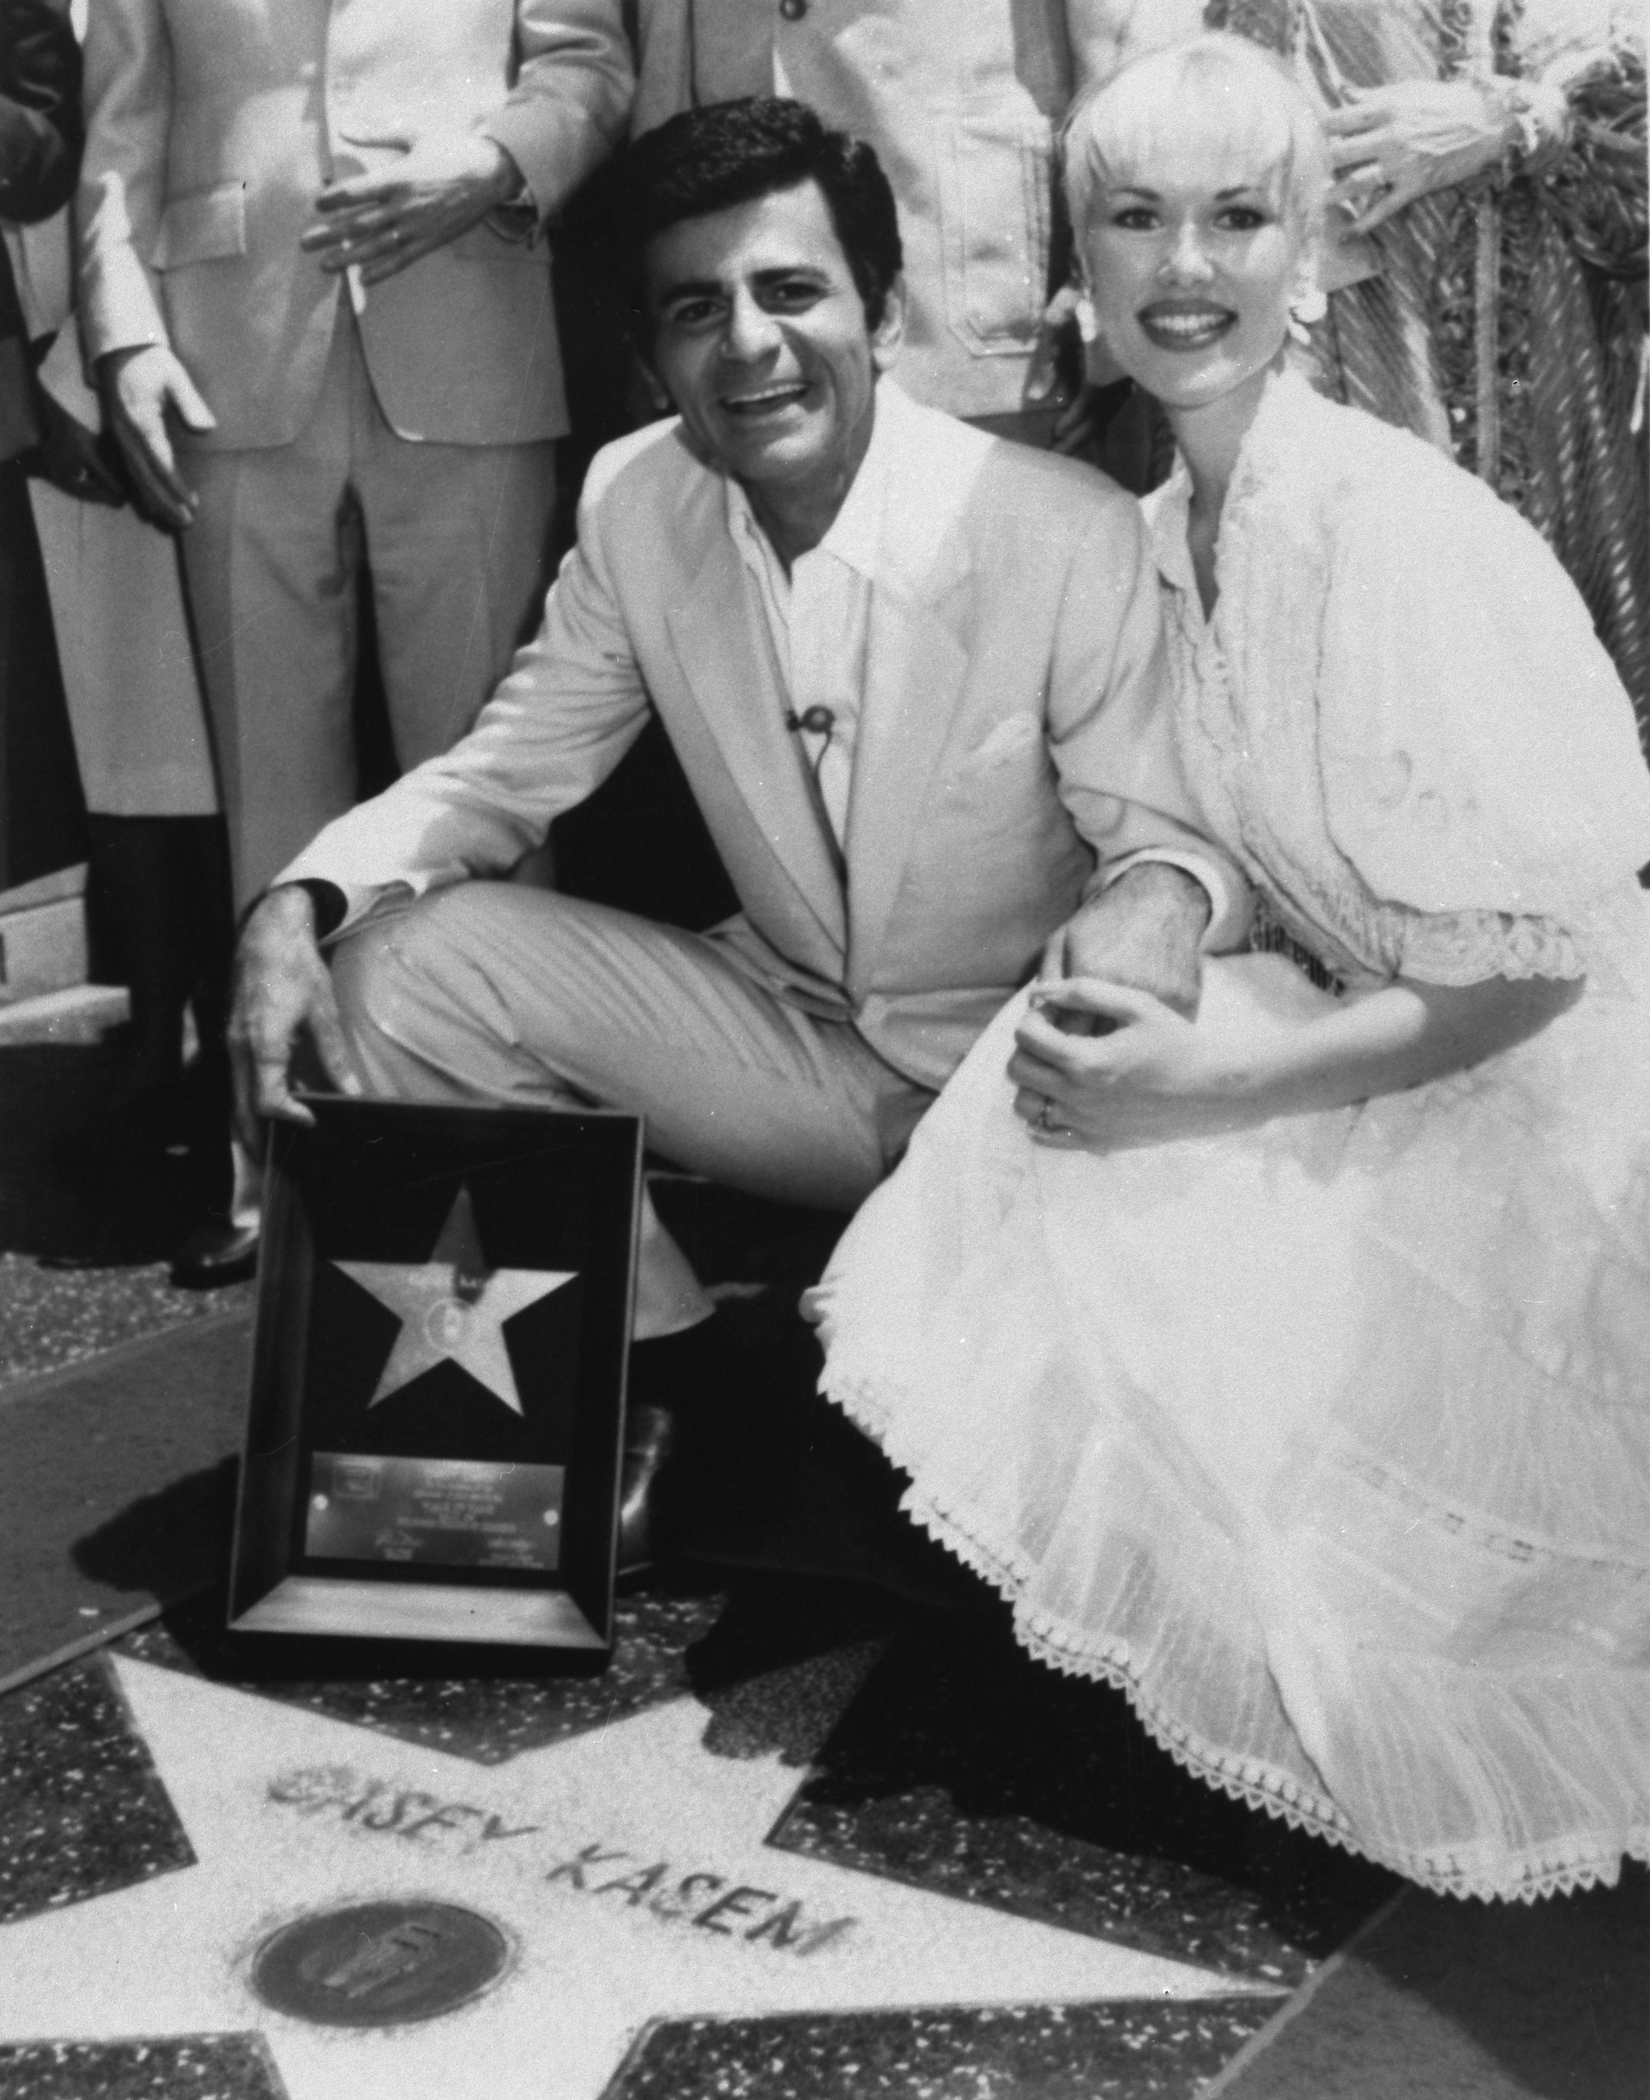 Casey Kasem and his wife Jean smile as he receives his own  Star  on the Hollywood Walk of Fame in Los Angeles, April 27, 1981.